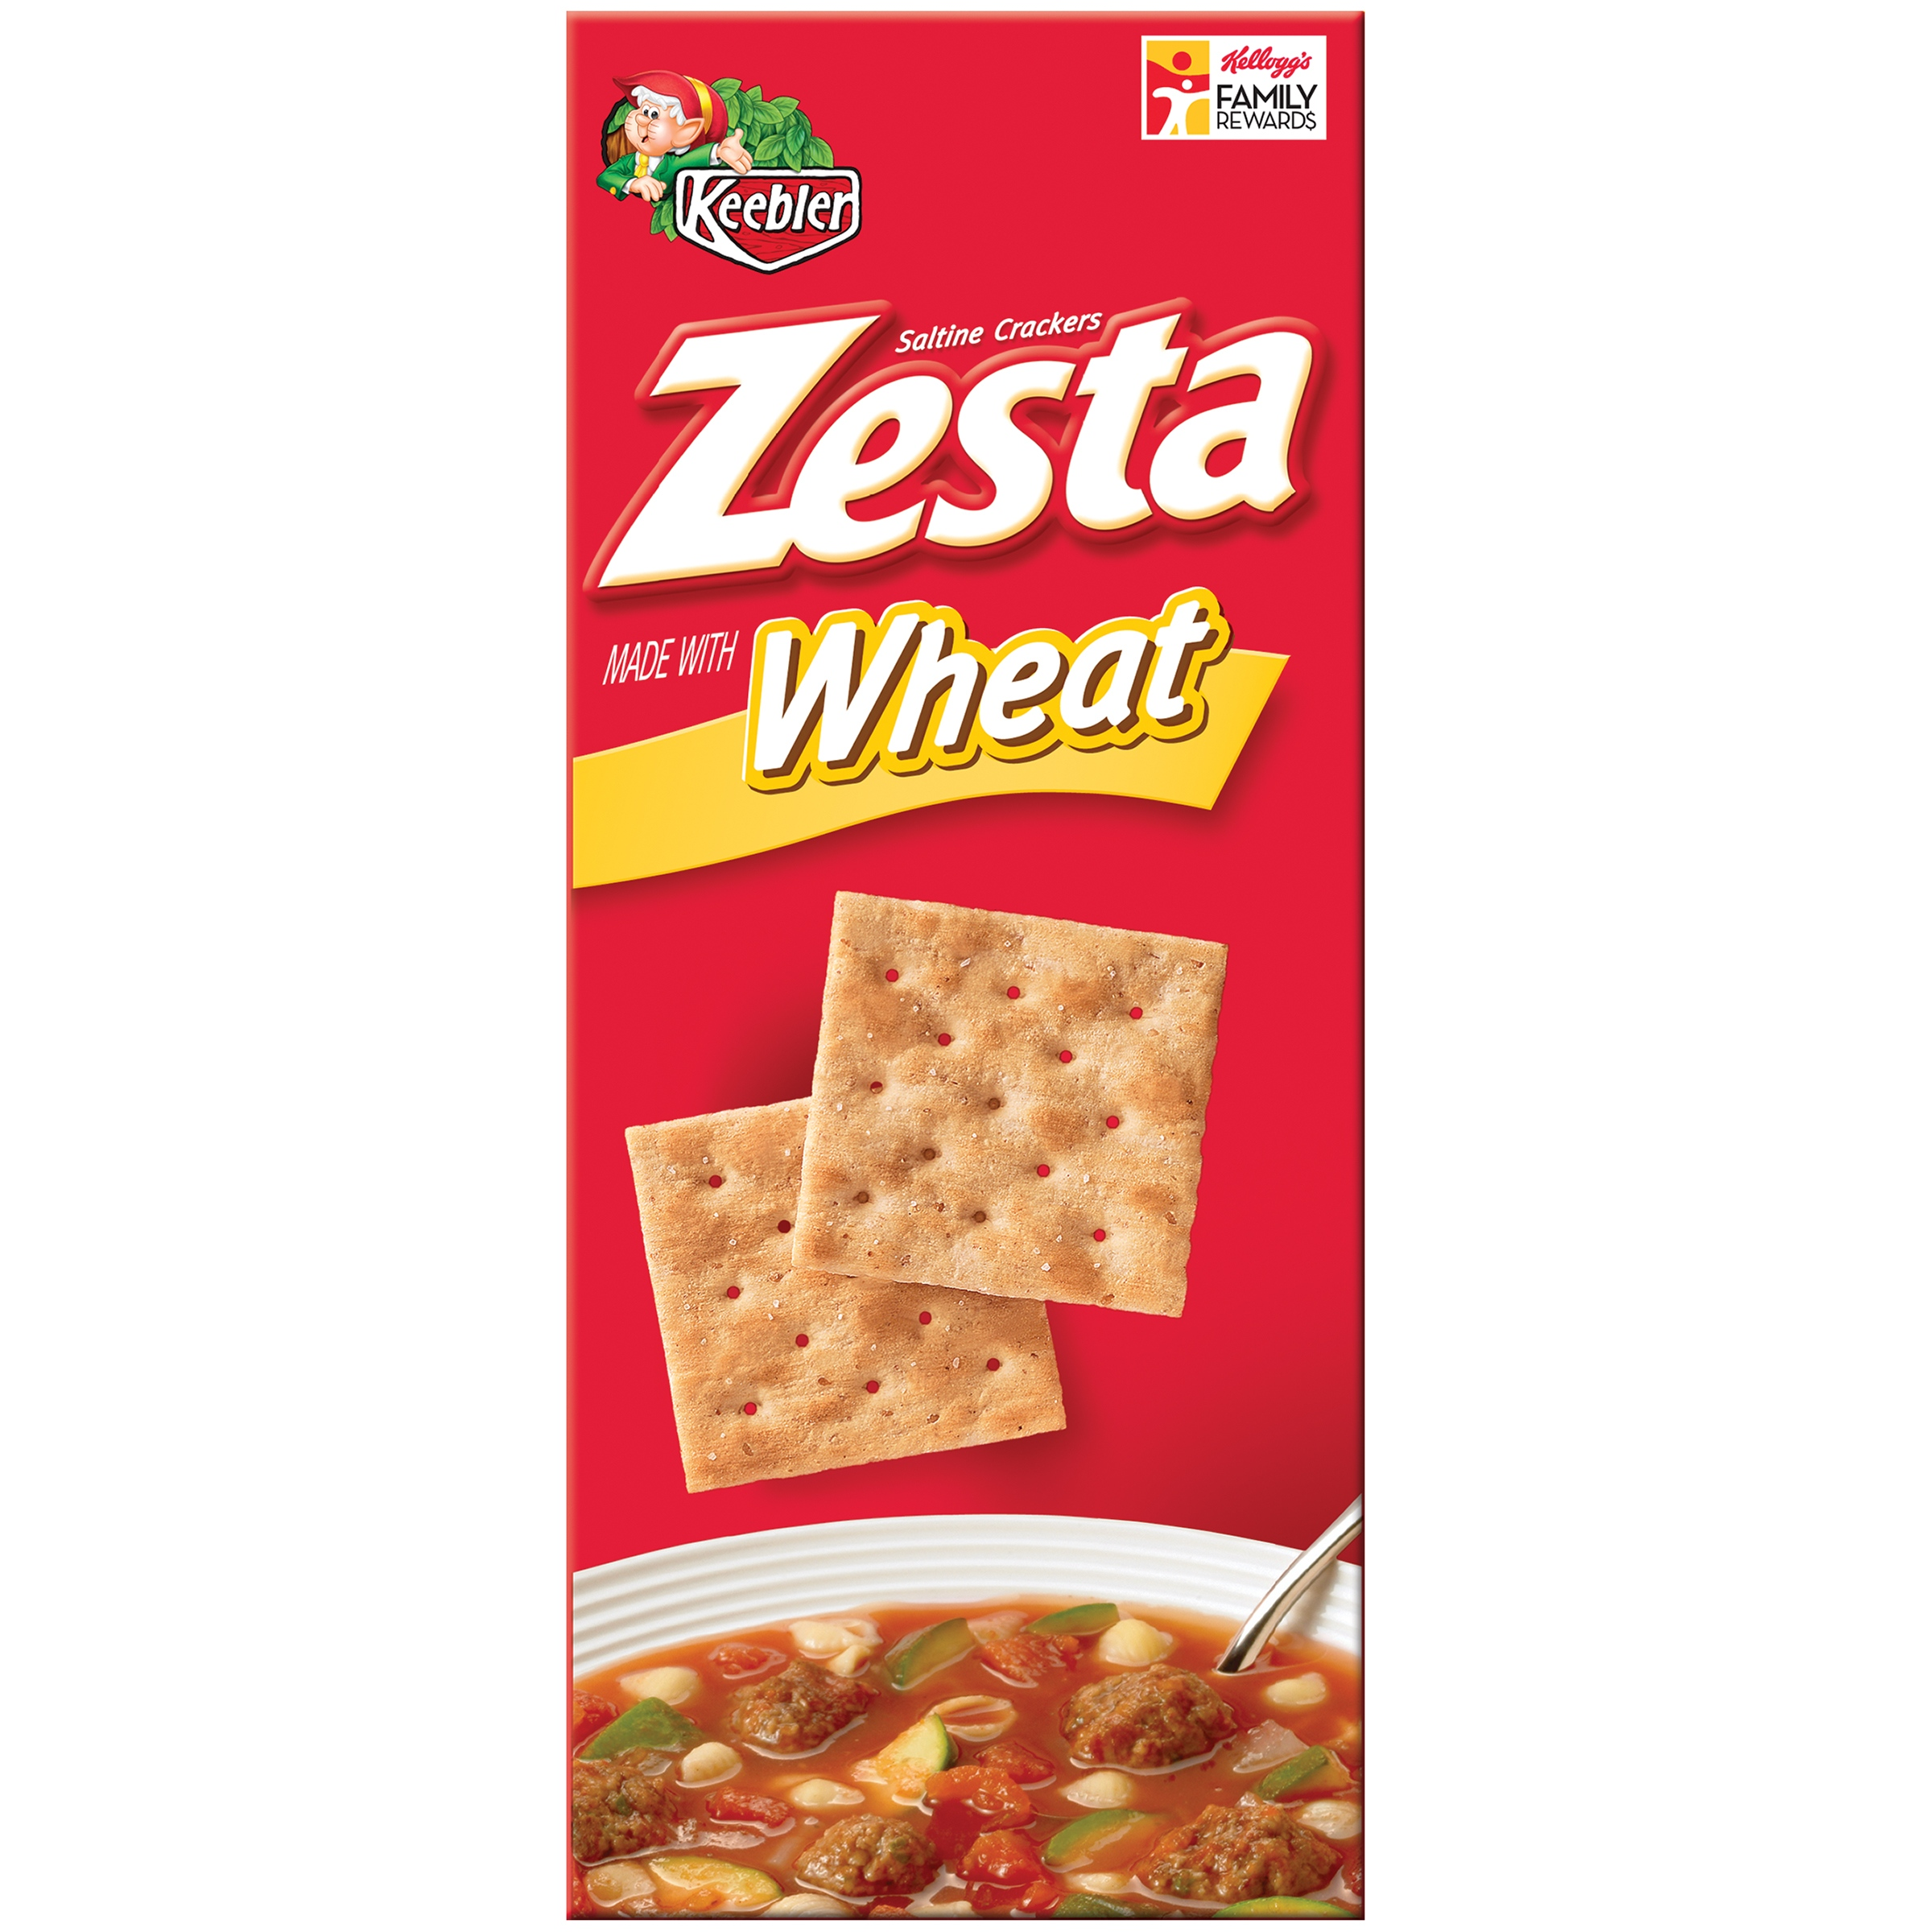 Keebler Zesta Whole Wheat Saltine Crackers, 16 ounce